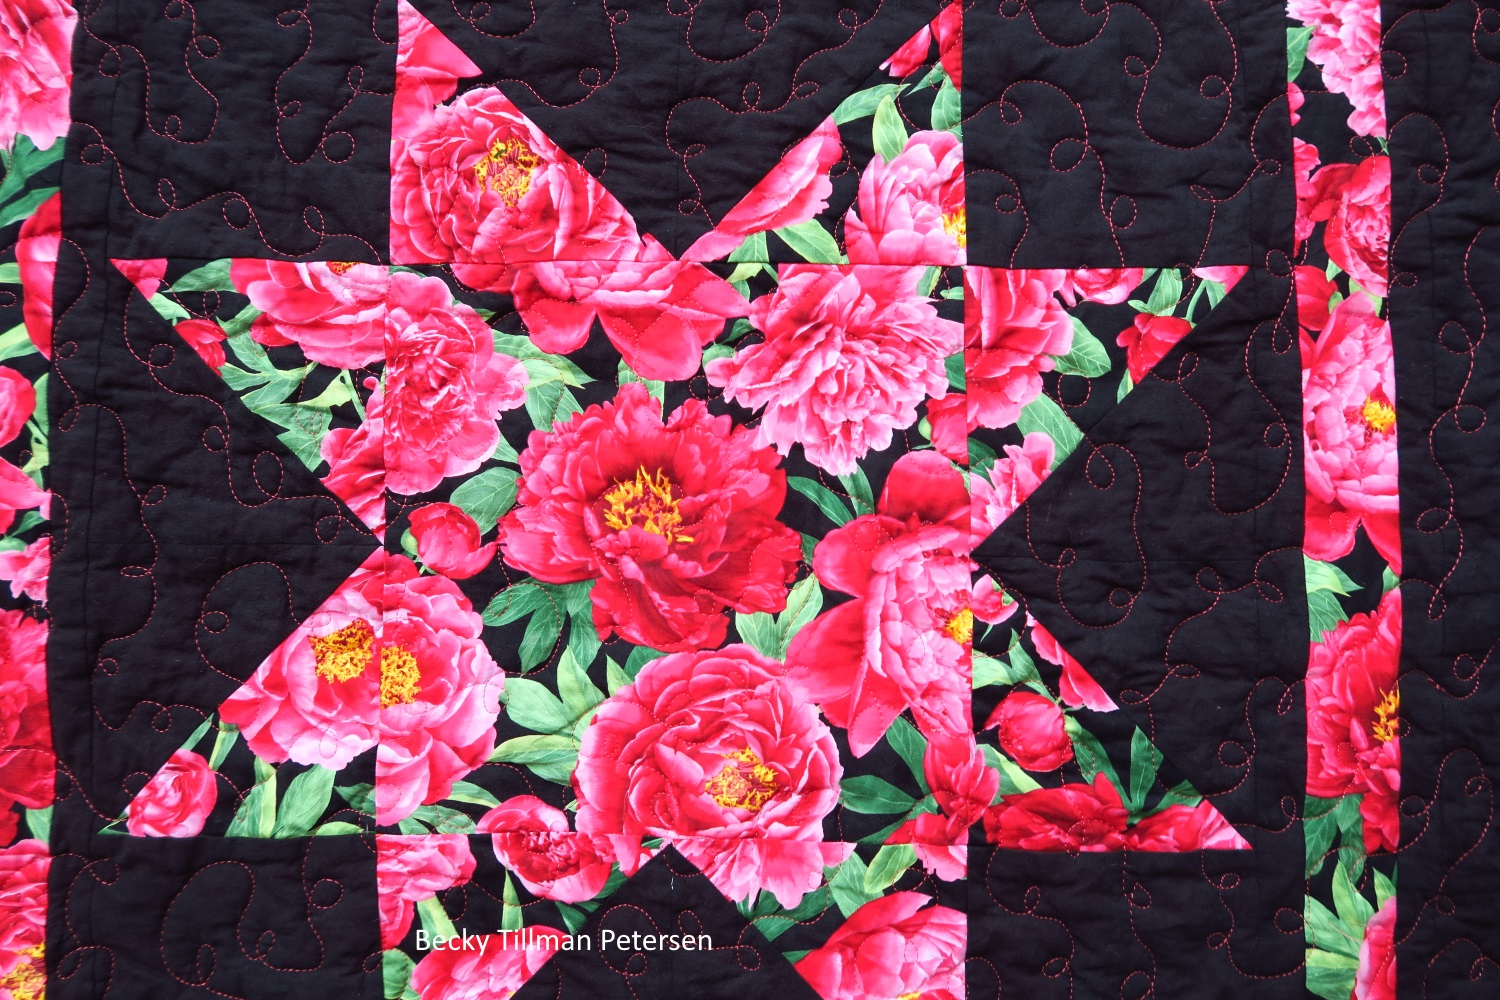 close up photo of star in center of quilt. In the center of the star is a red rose with yellow golden pollen